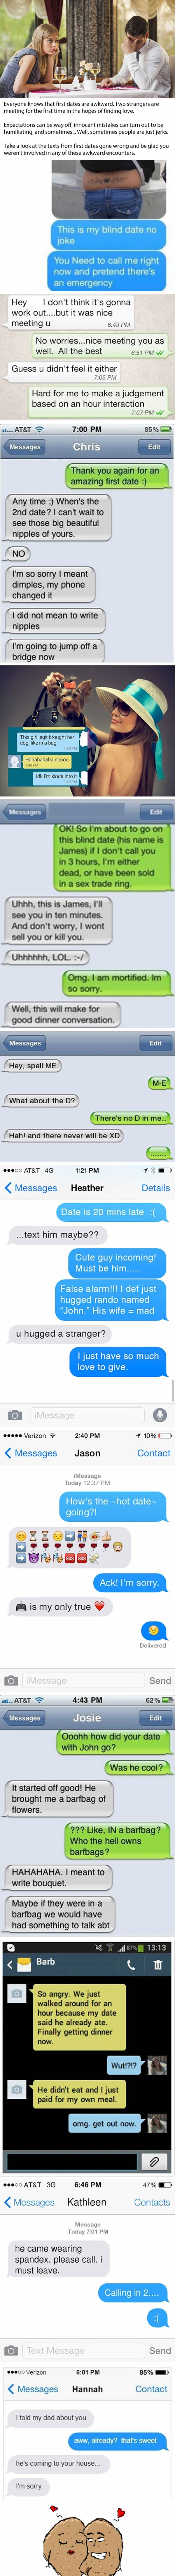 12 Incredibly Awkward Texts That Show Just How Tricky First Dates Can Be - 9GAG